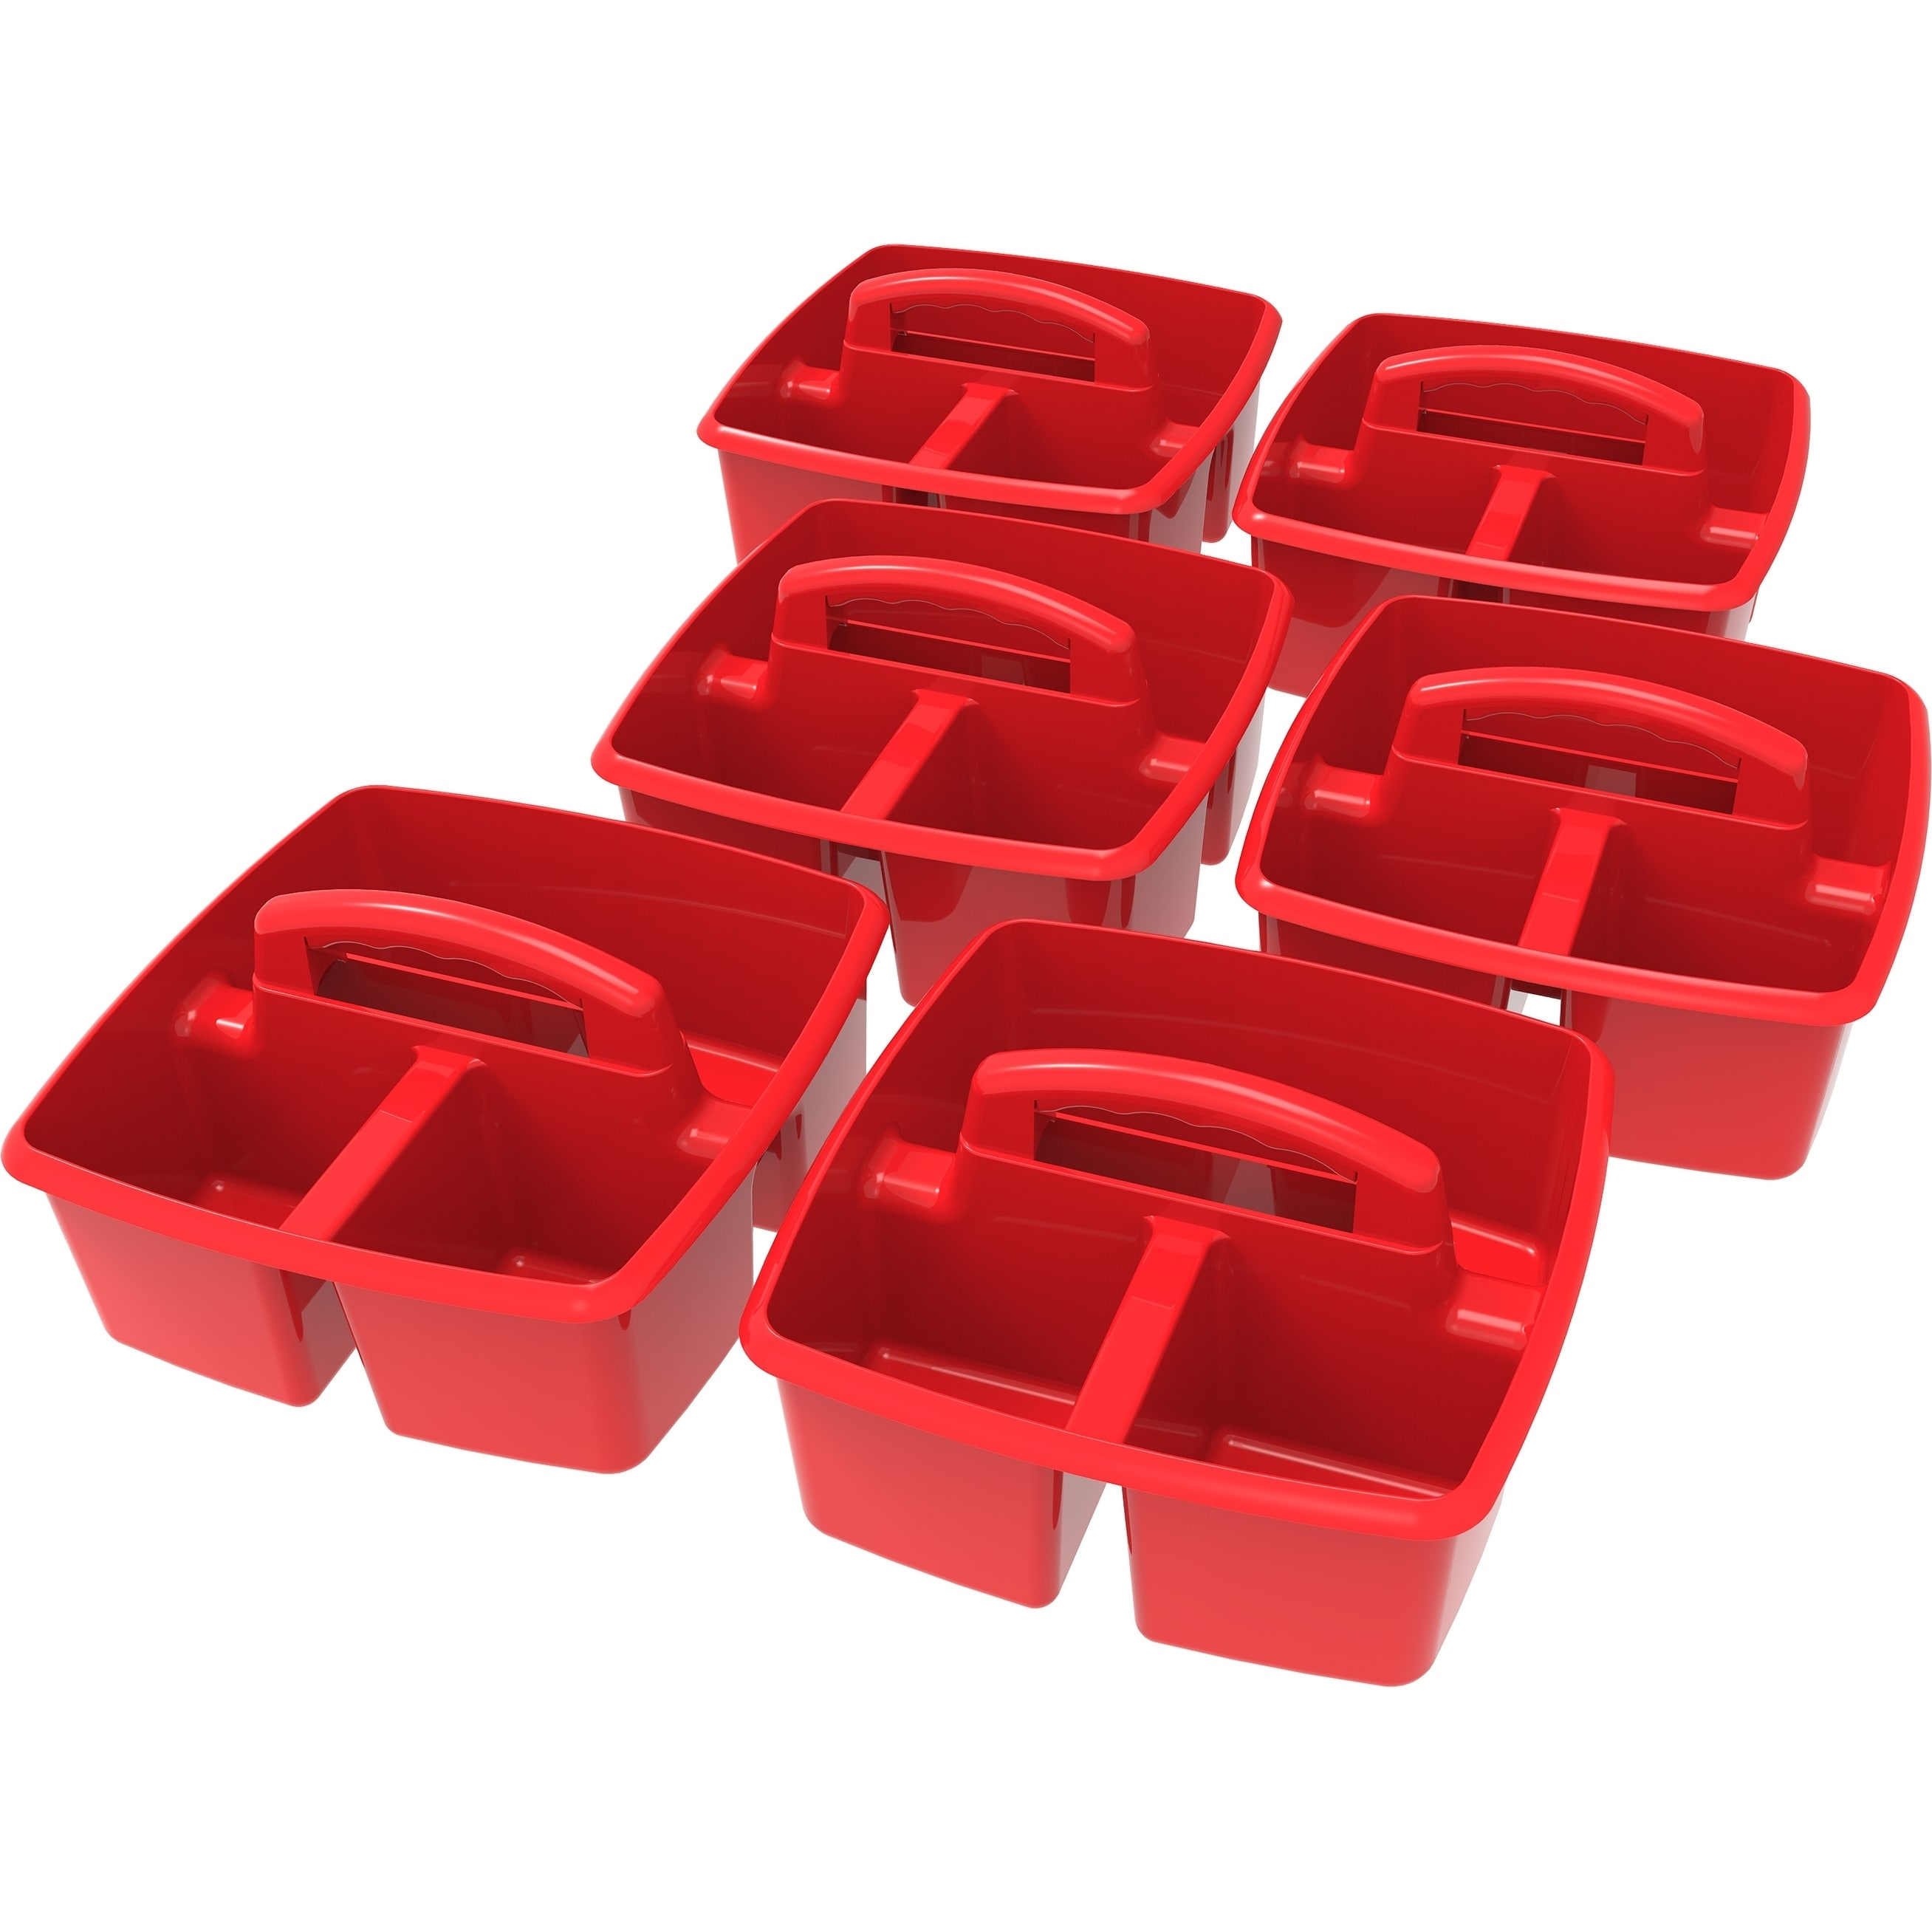 Storex  Classroom Caddy / Red (6 units/pack)